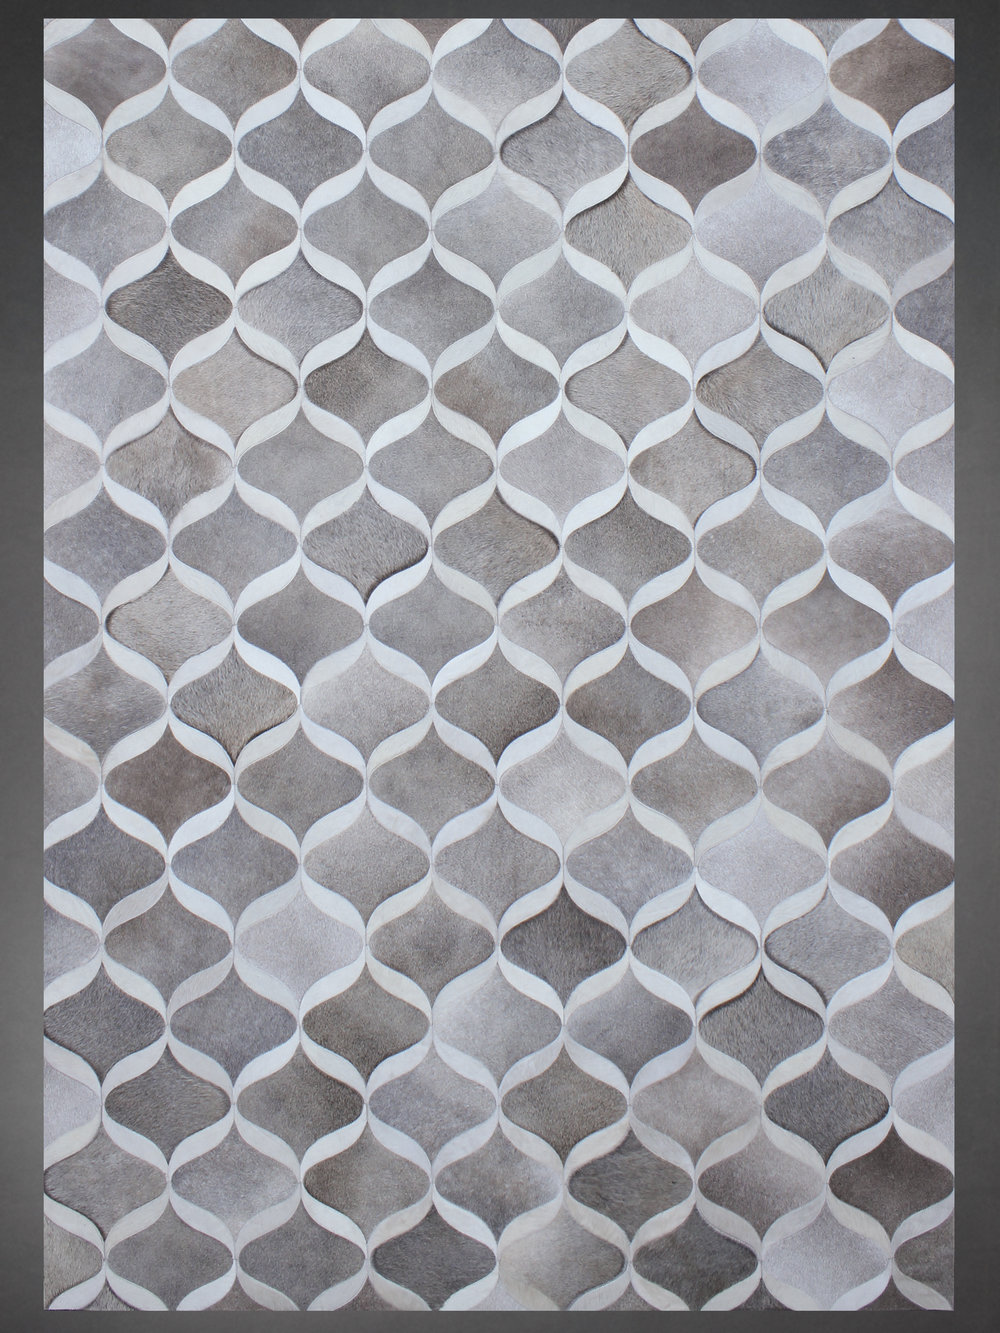 Contemporary designed fur rug in a geometric pattern in grays and browns.